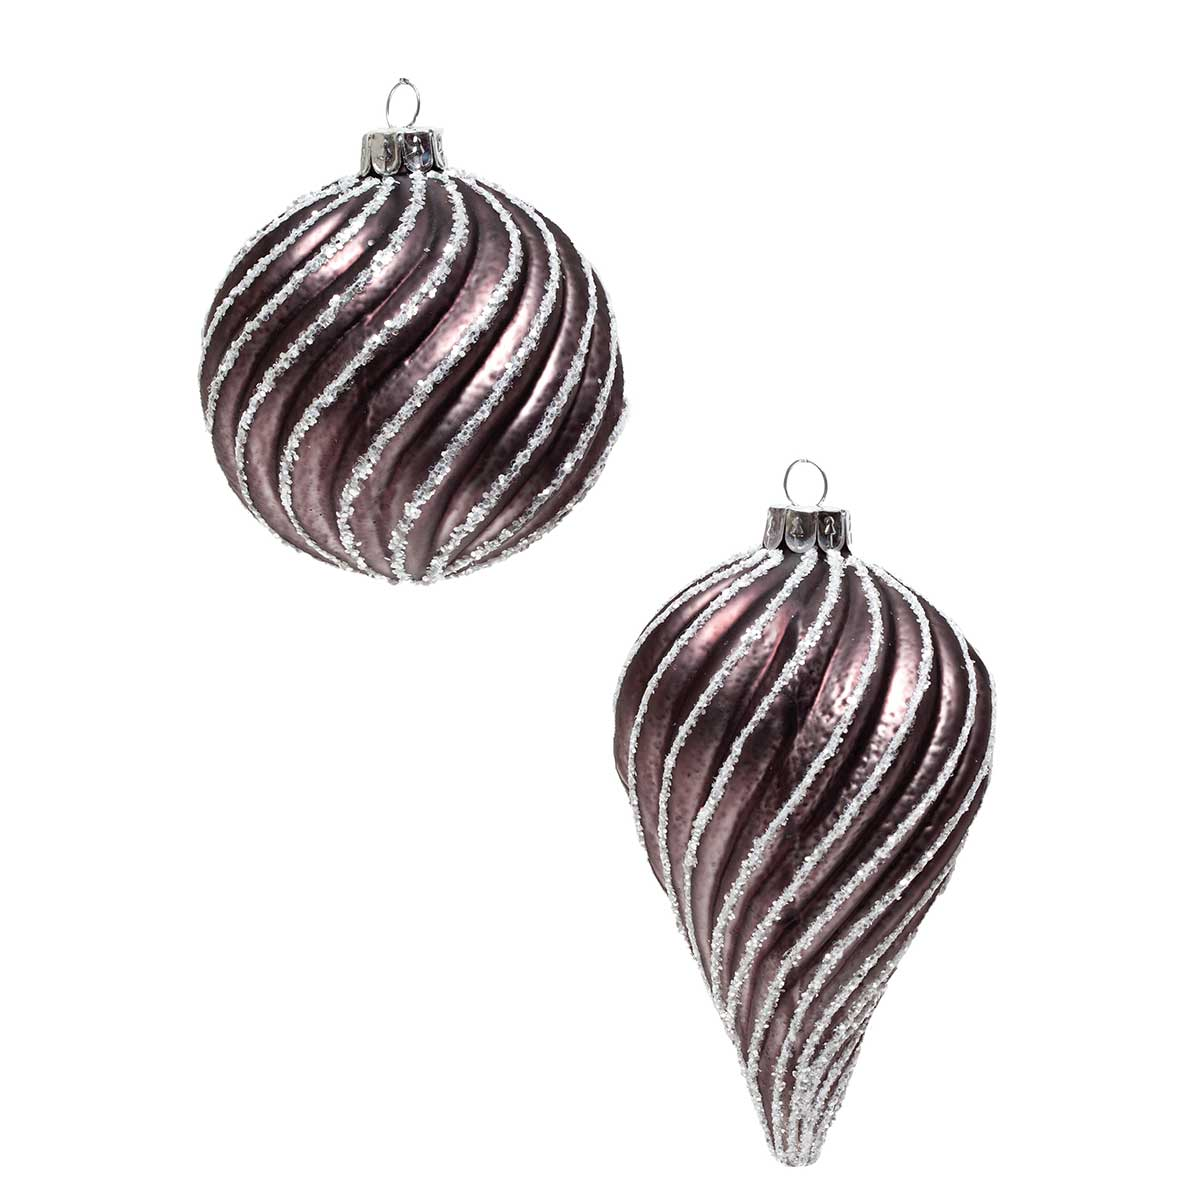 "TAUPE GLASS SWIRL ORNAMENT 4"" TEARDROP/BALL"